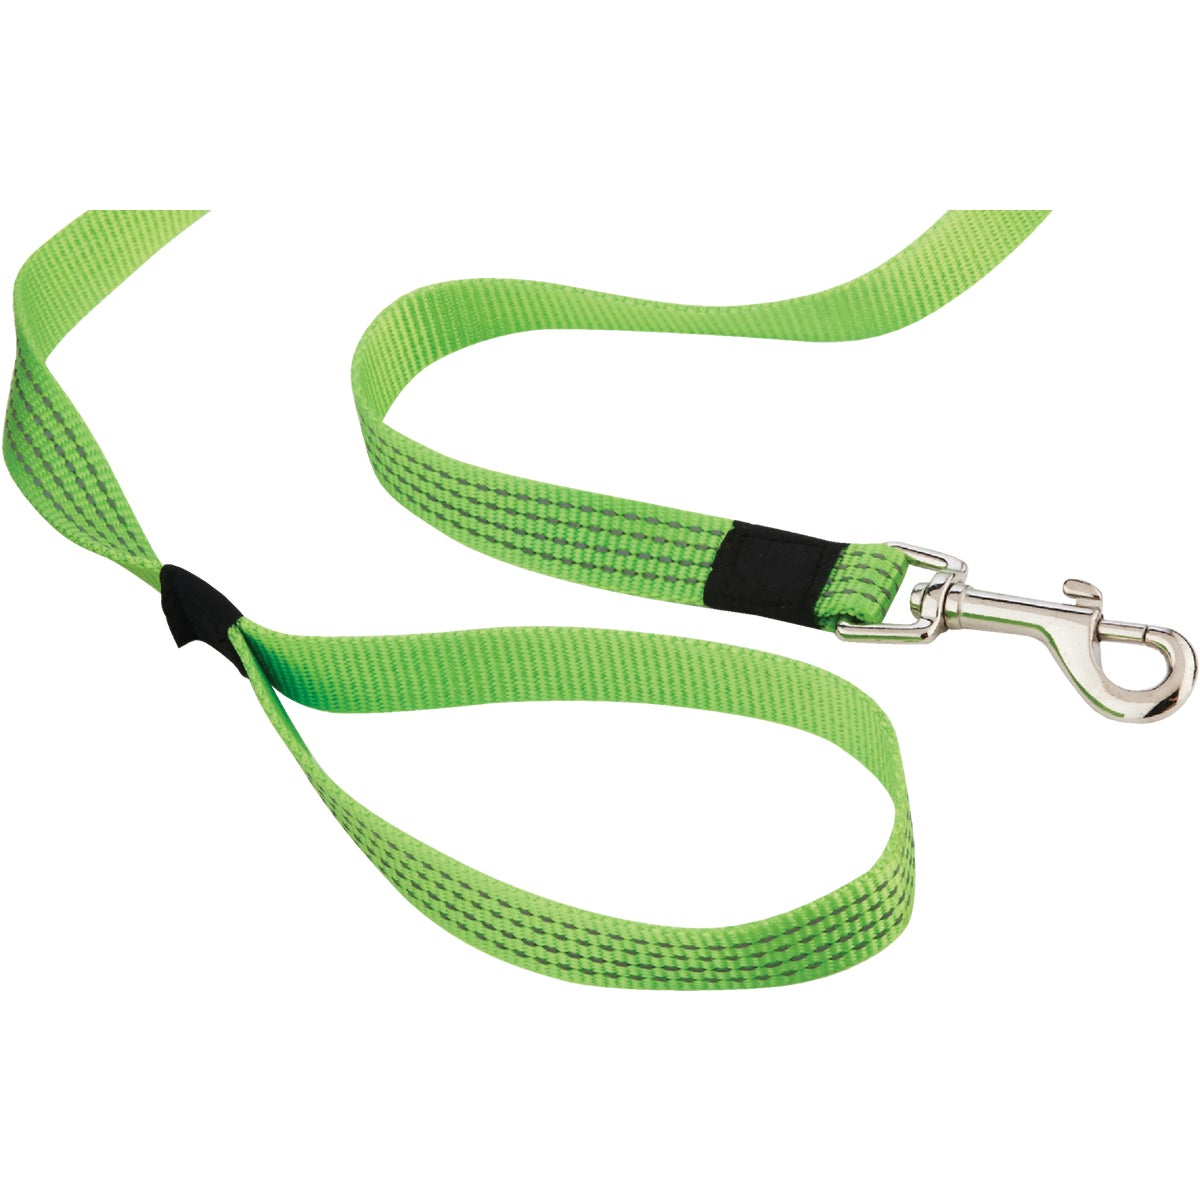 4FT HI-VIS DOG LEASH - 32712 by Westminster Pet